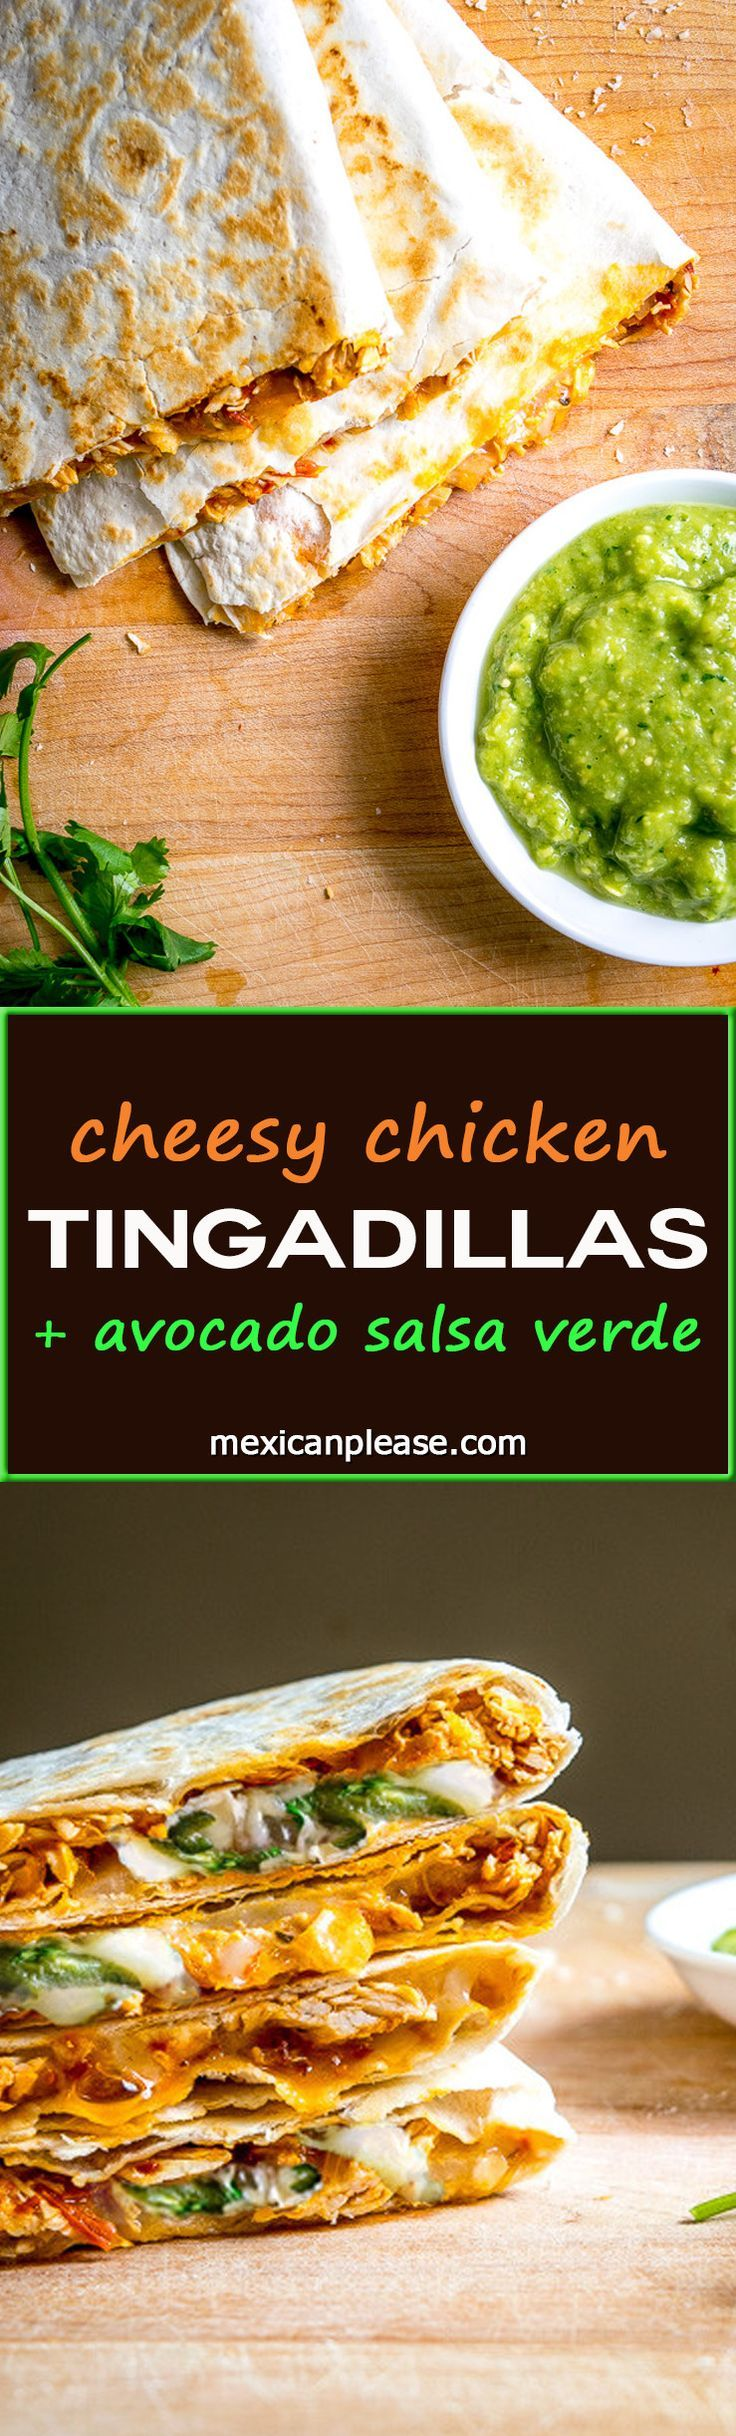 Got leftover Tinga? Make Tingadillas! These Cheesy Chicken Tinga Quesadillas with Green Sauce will change the course of your day for the better -- includes recipe for making Tinga from scratch | http://mexicanplease.com